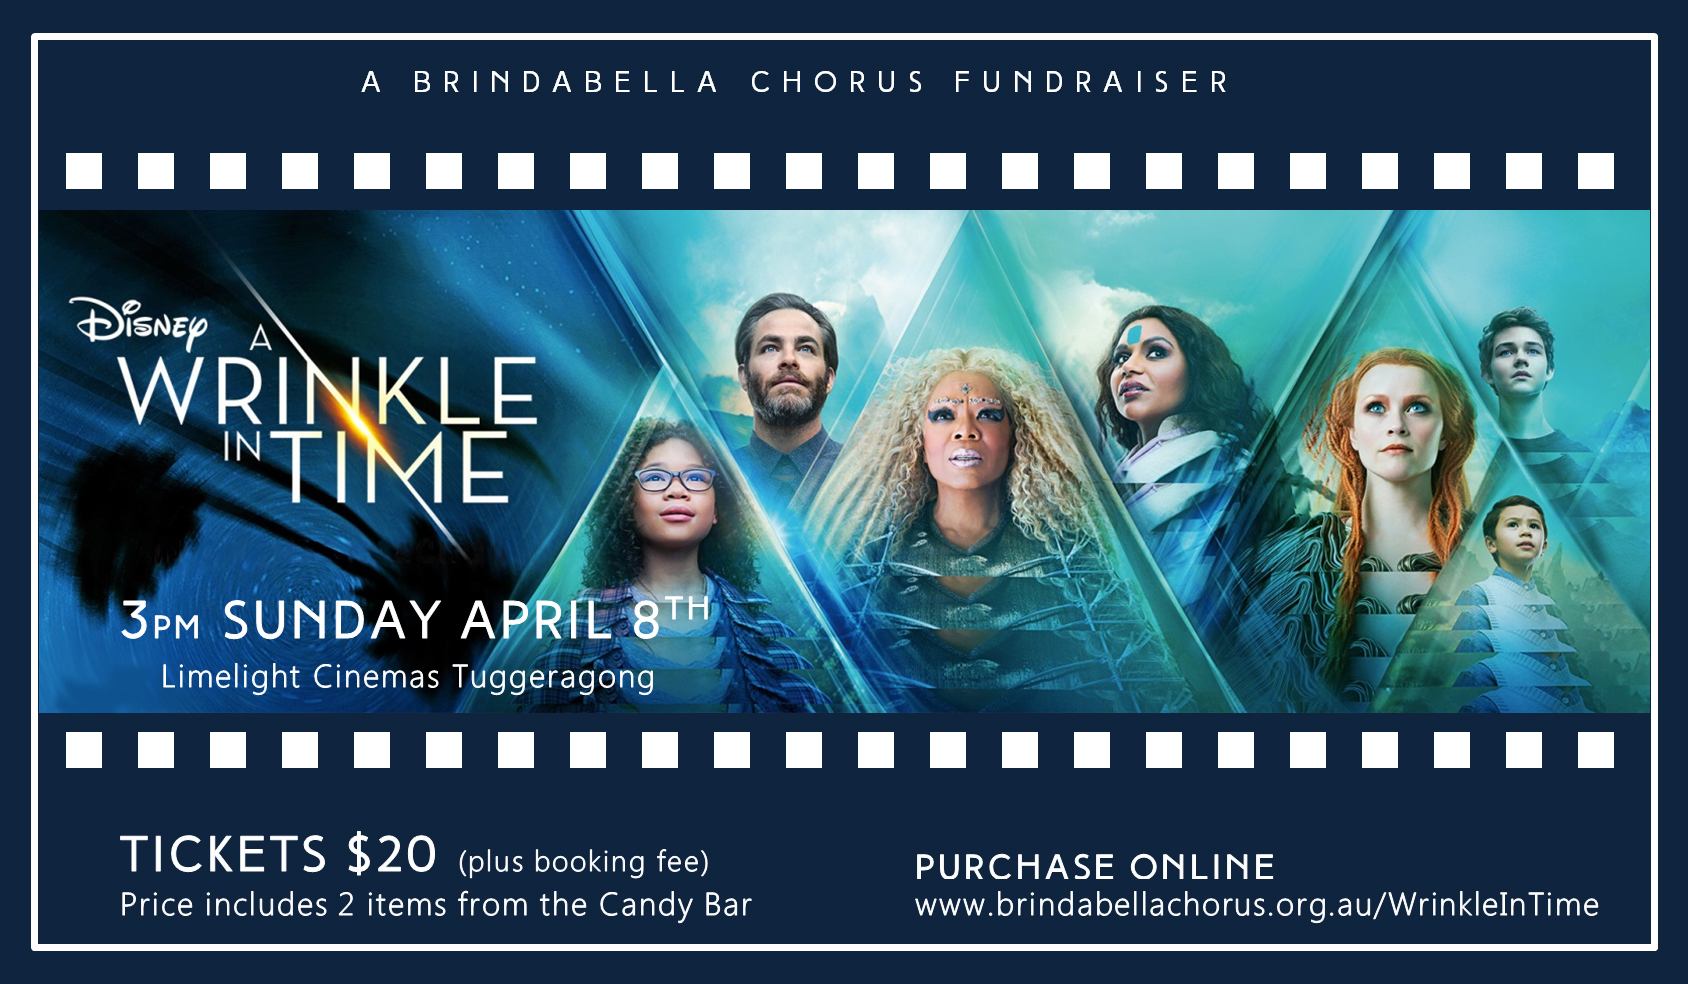 A Wrinkle In Time - Movie Fundraiser